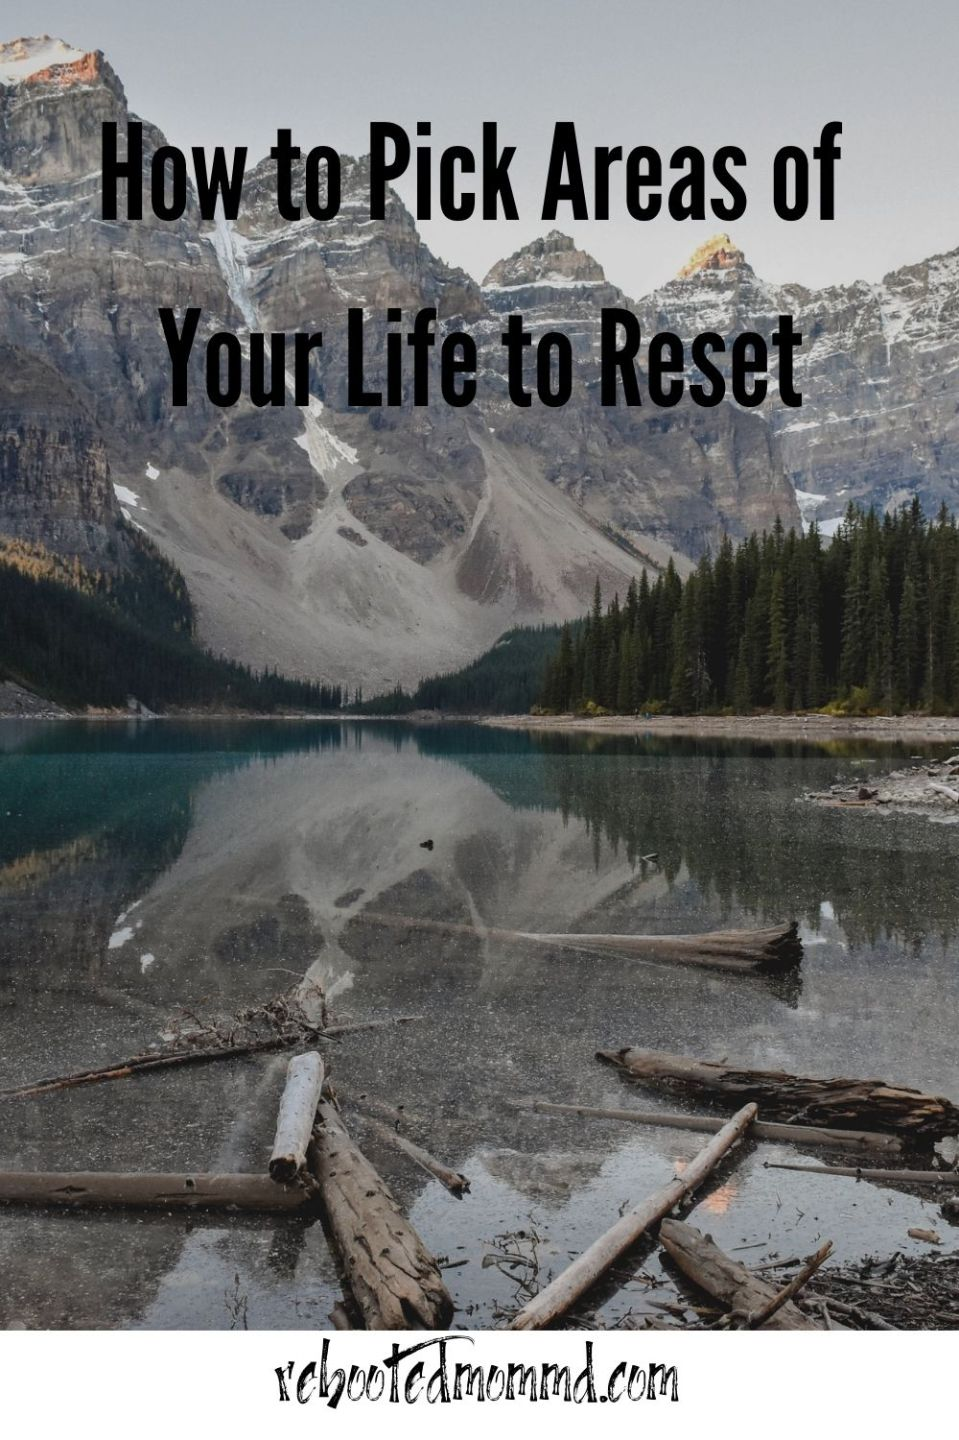 Analysis: How to Pick Areas of Your Life to Reset